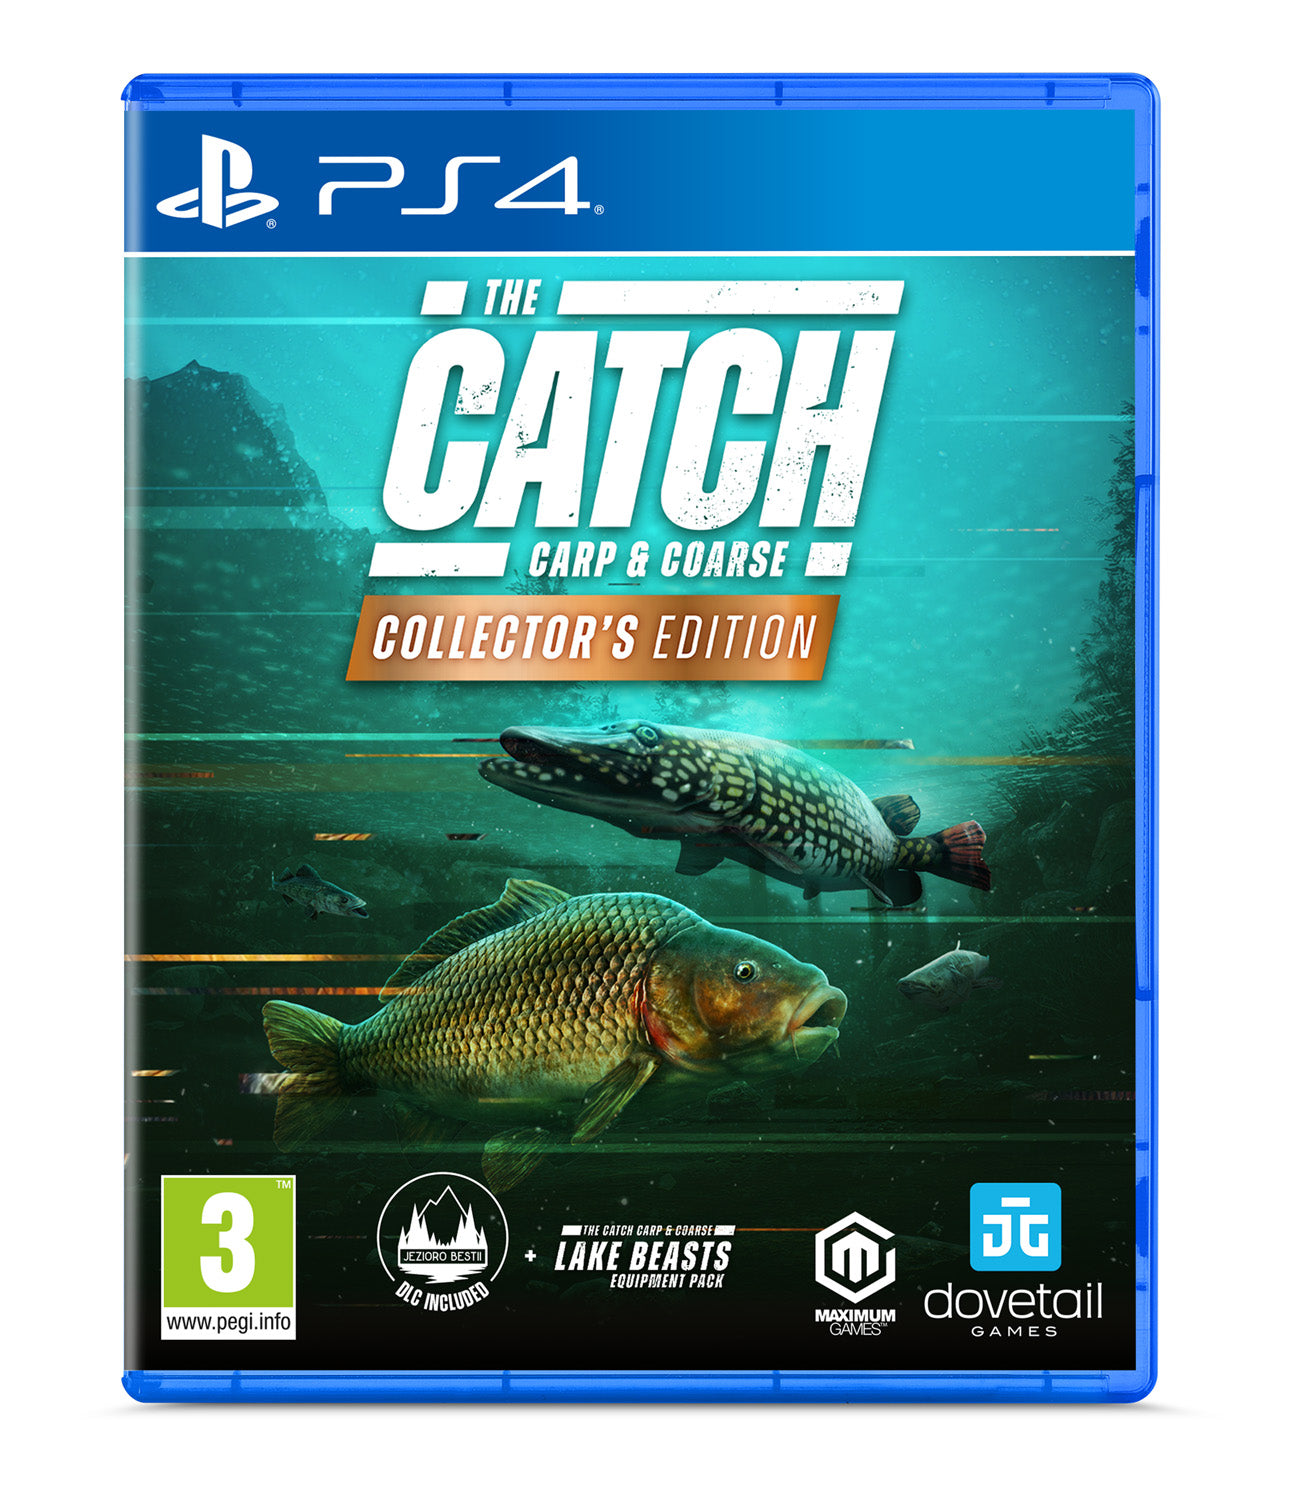 The Catch: Carp & Coarse - Collector's Edition - PlayStation 4